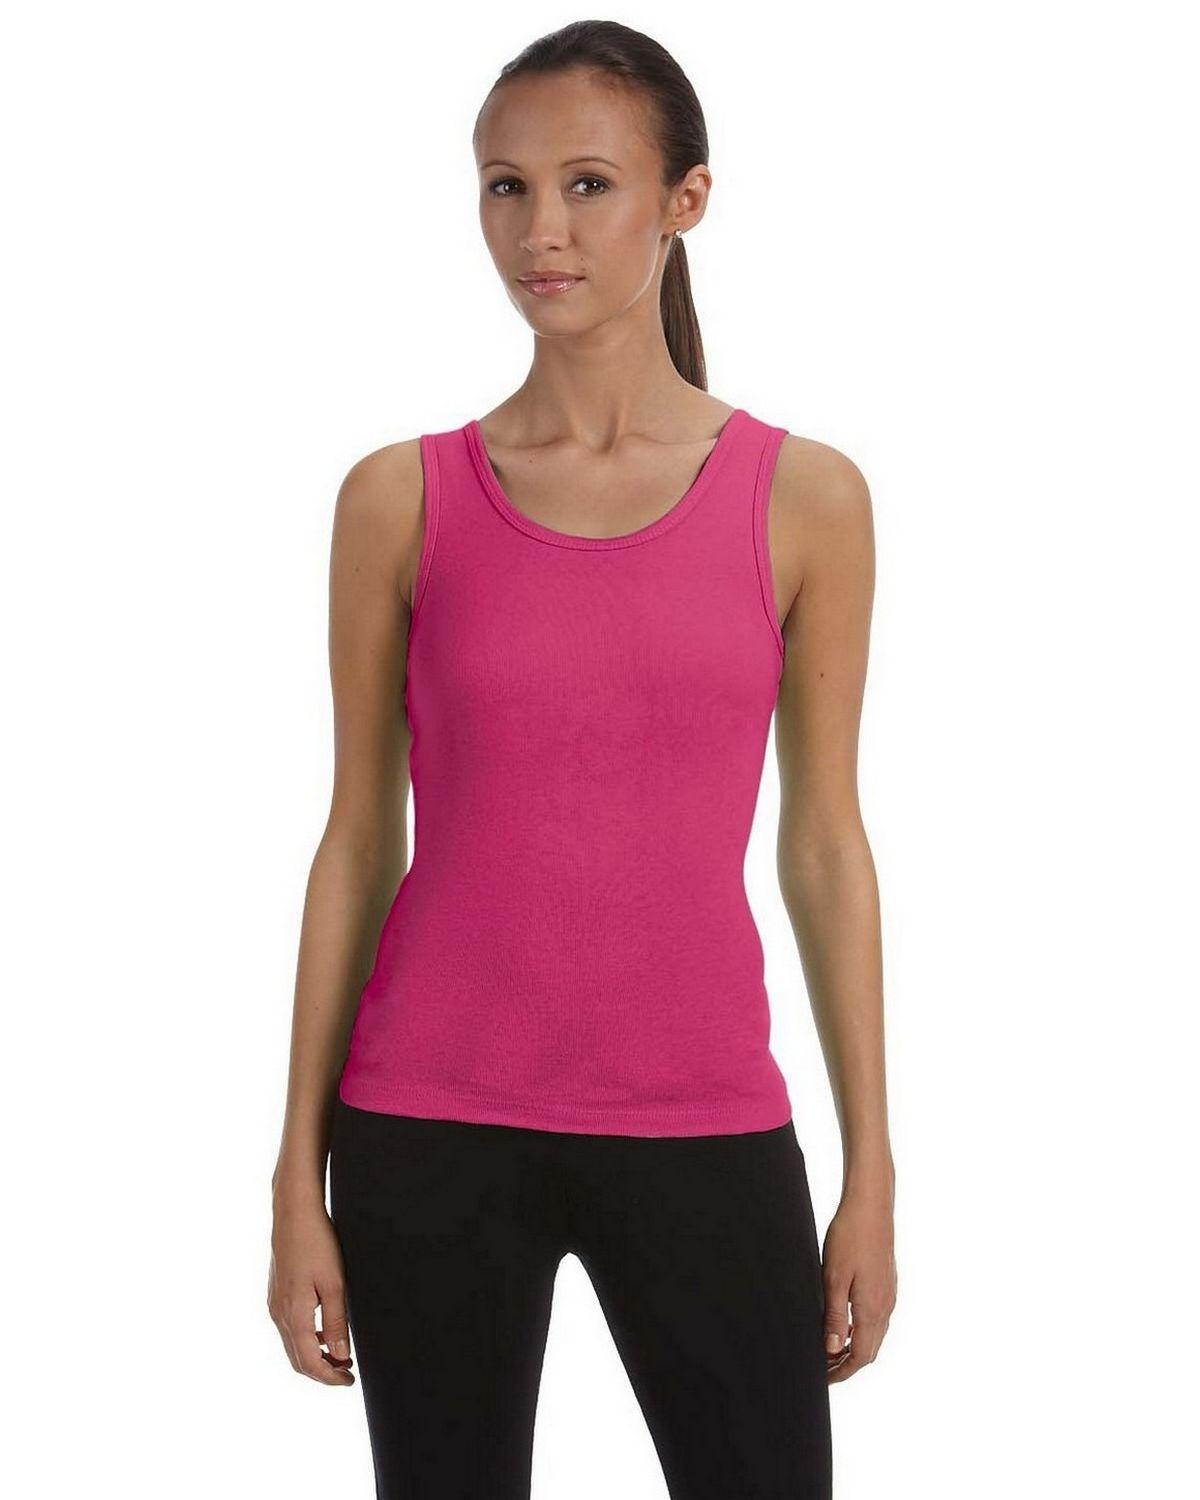 Bella + Canvas 1080 Ladies 1x1 Baby Rib Wide Strap Tank - Berry - S 1080